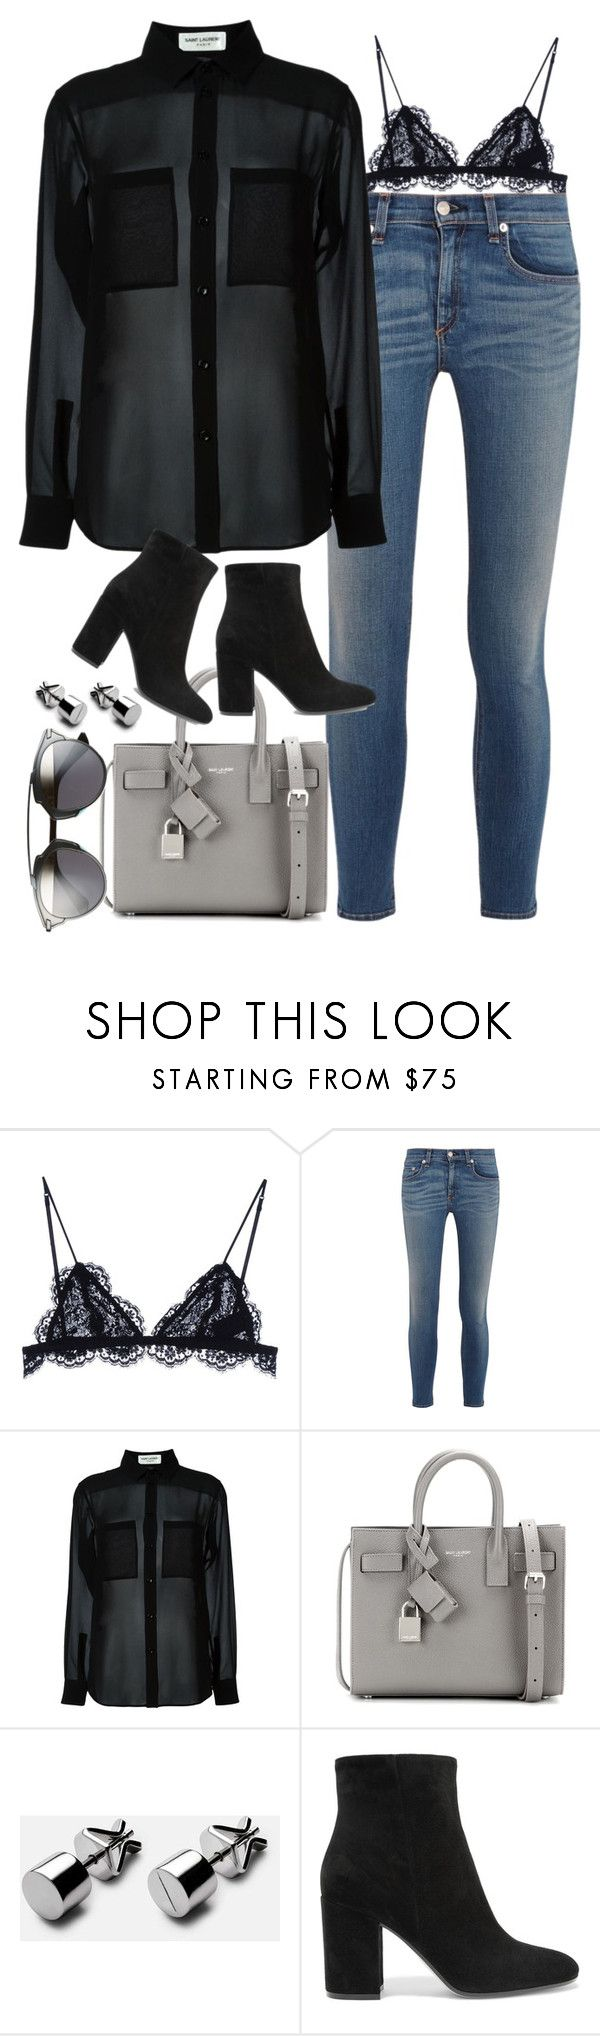 """Untitled #1758"" by sarah-ihab ❤ liked on Polyvore featuring Isabel Marant, rag & bone, Yves Saint Laurent, Gianvito Rossi and Christian Dior"